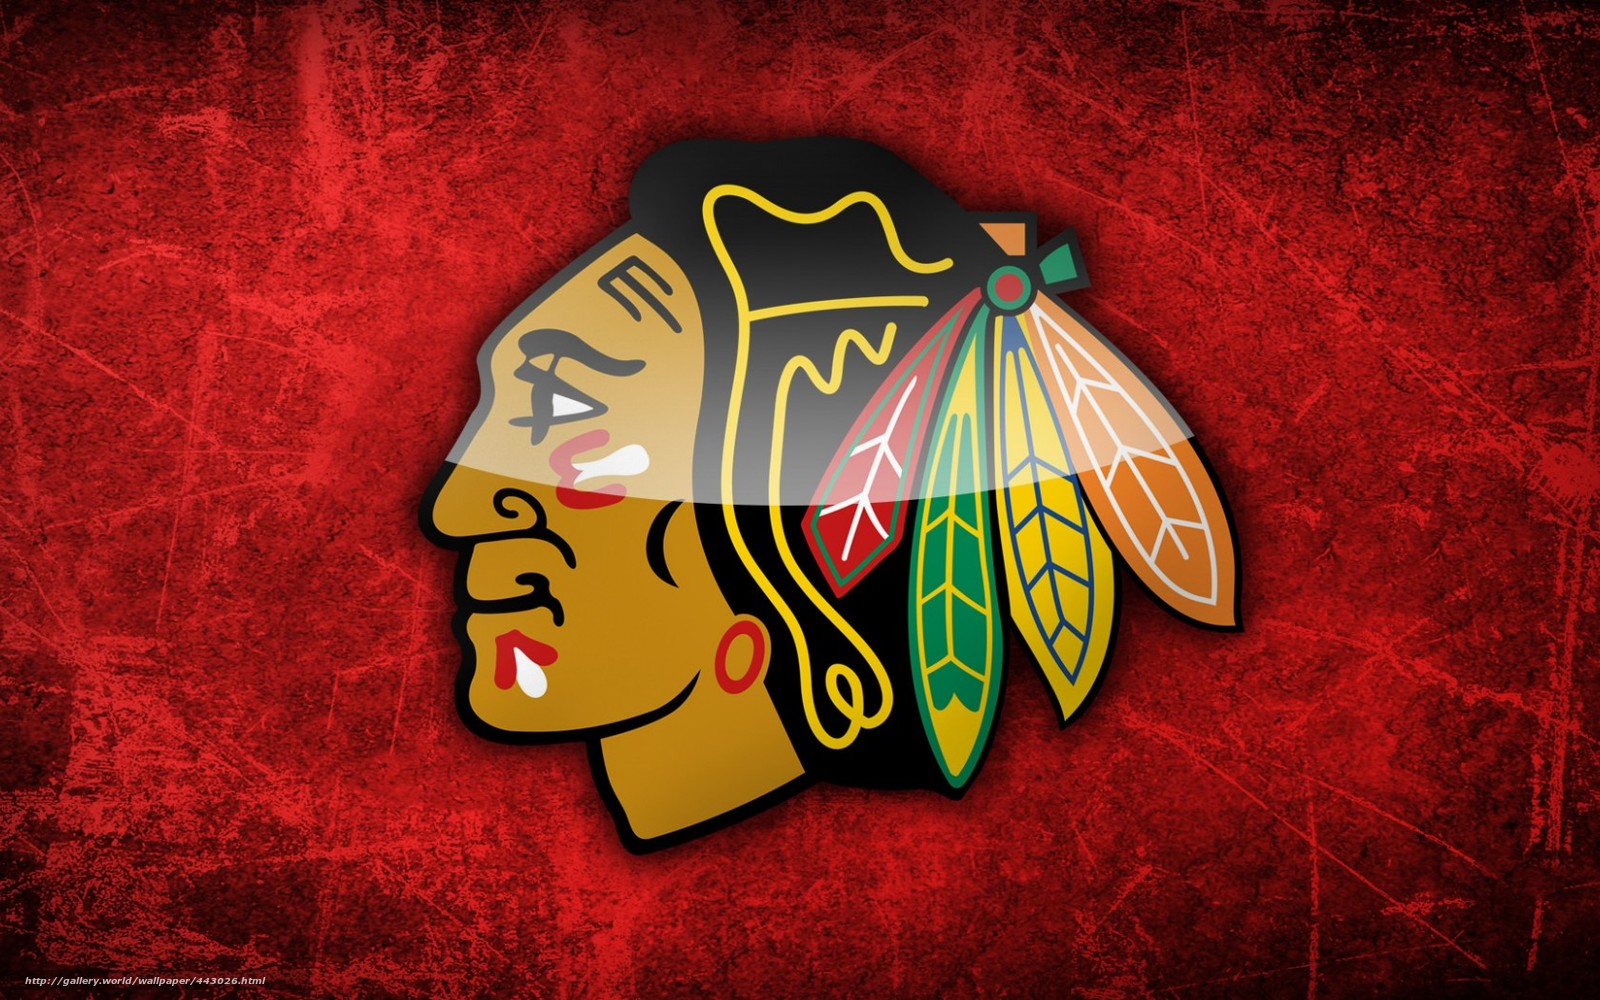 Download wallpaper NHL Chicago desktop wallpaper in the 1600x1000